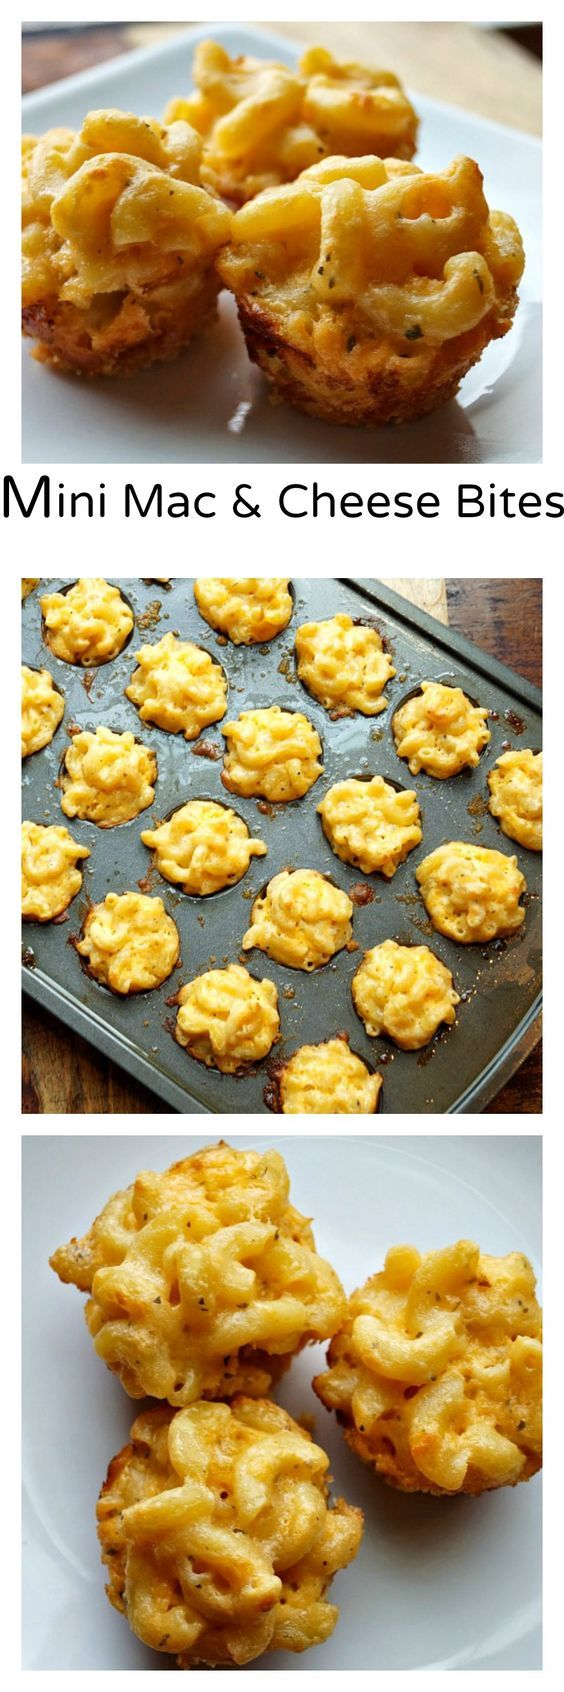 Mini Macaroni and Cheese Bites, A great tailgating food!